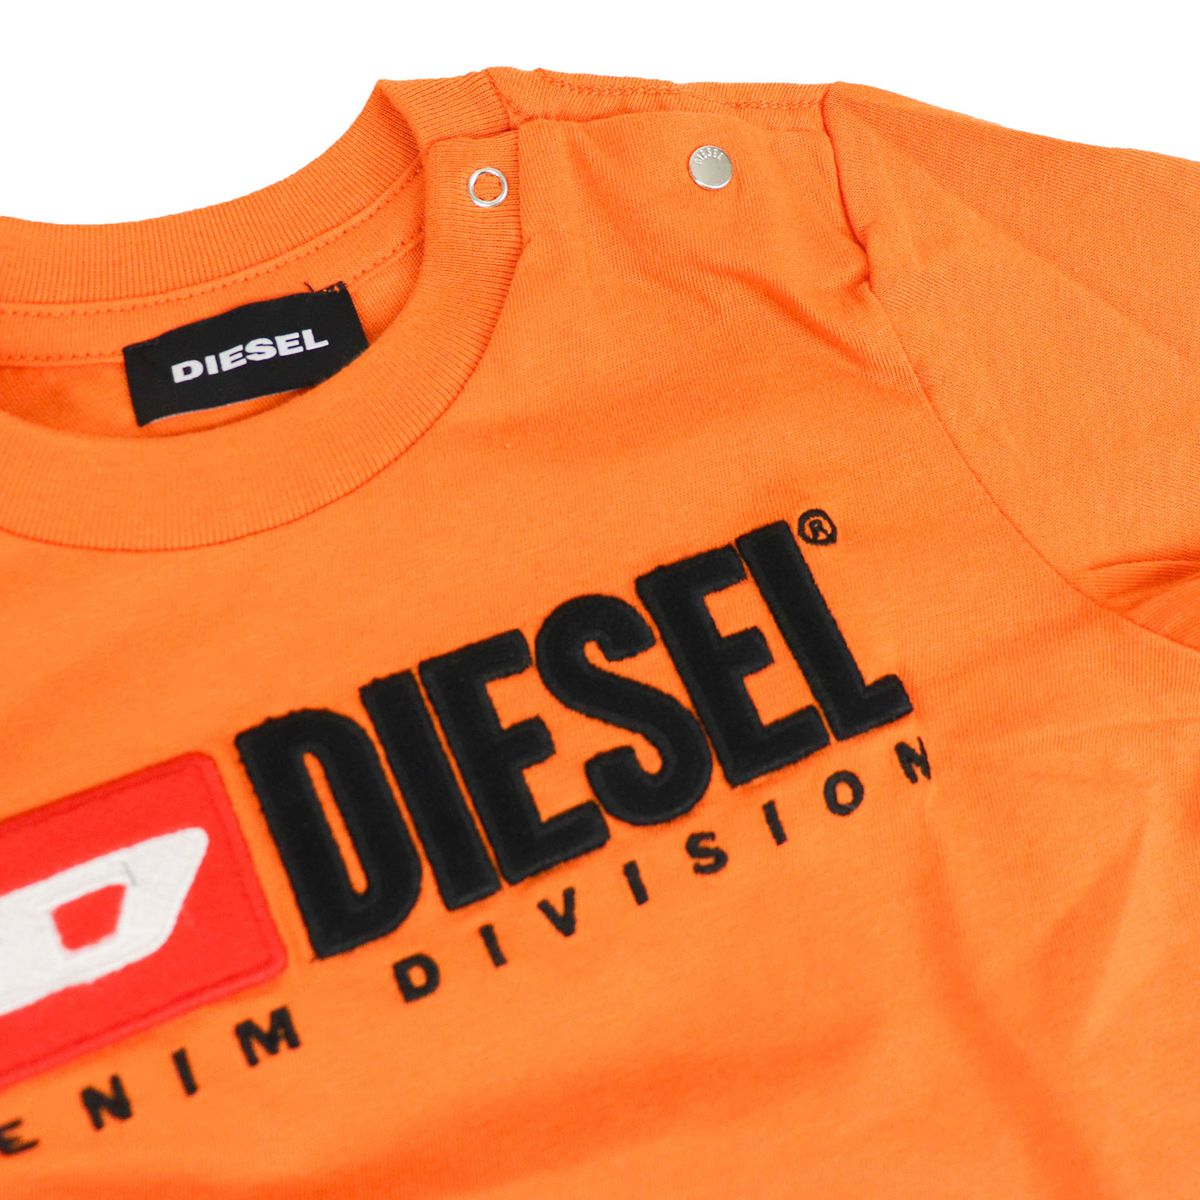 T-shirt with applied logo on the front Orange Diesel